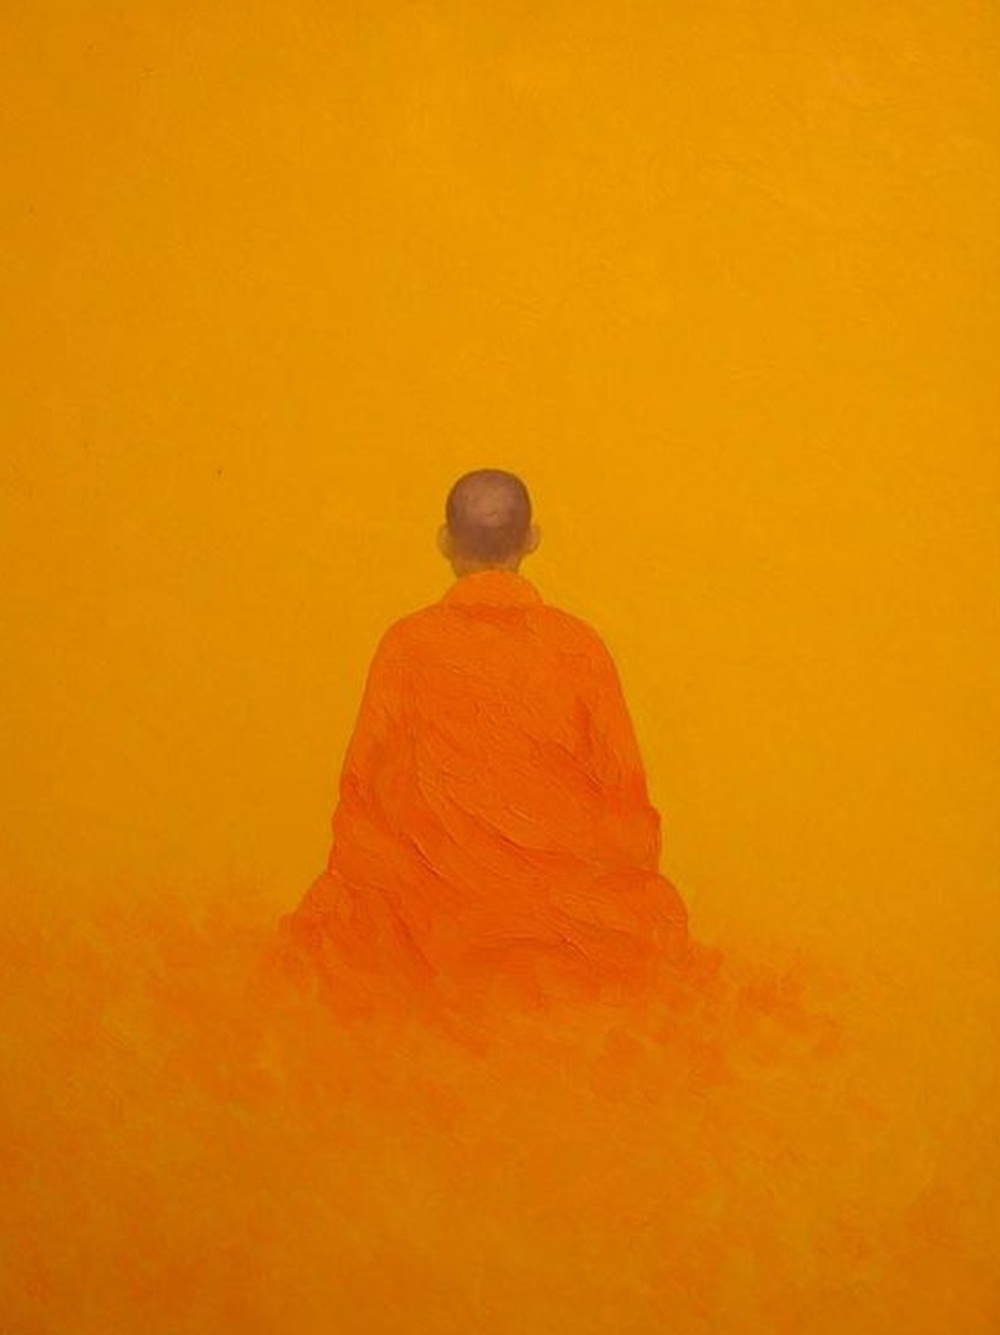 [Mindfullness] The antidote for mind wandering is attention to attention itself